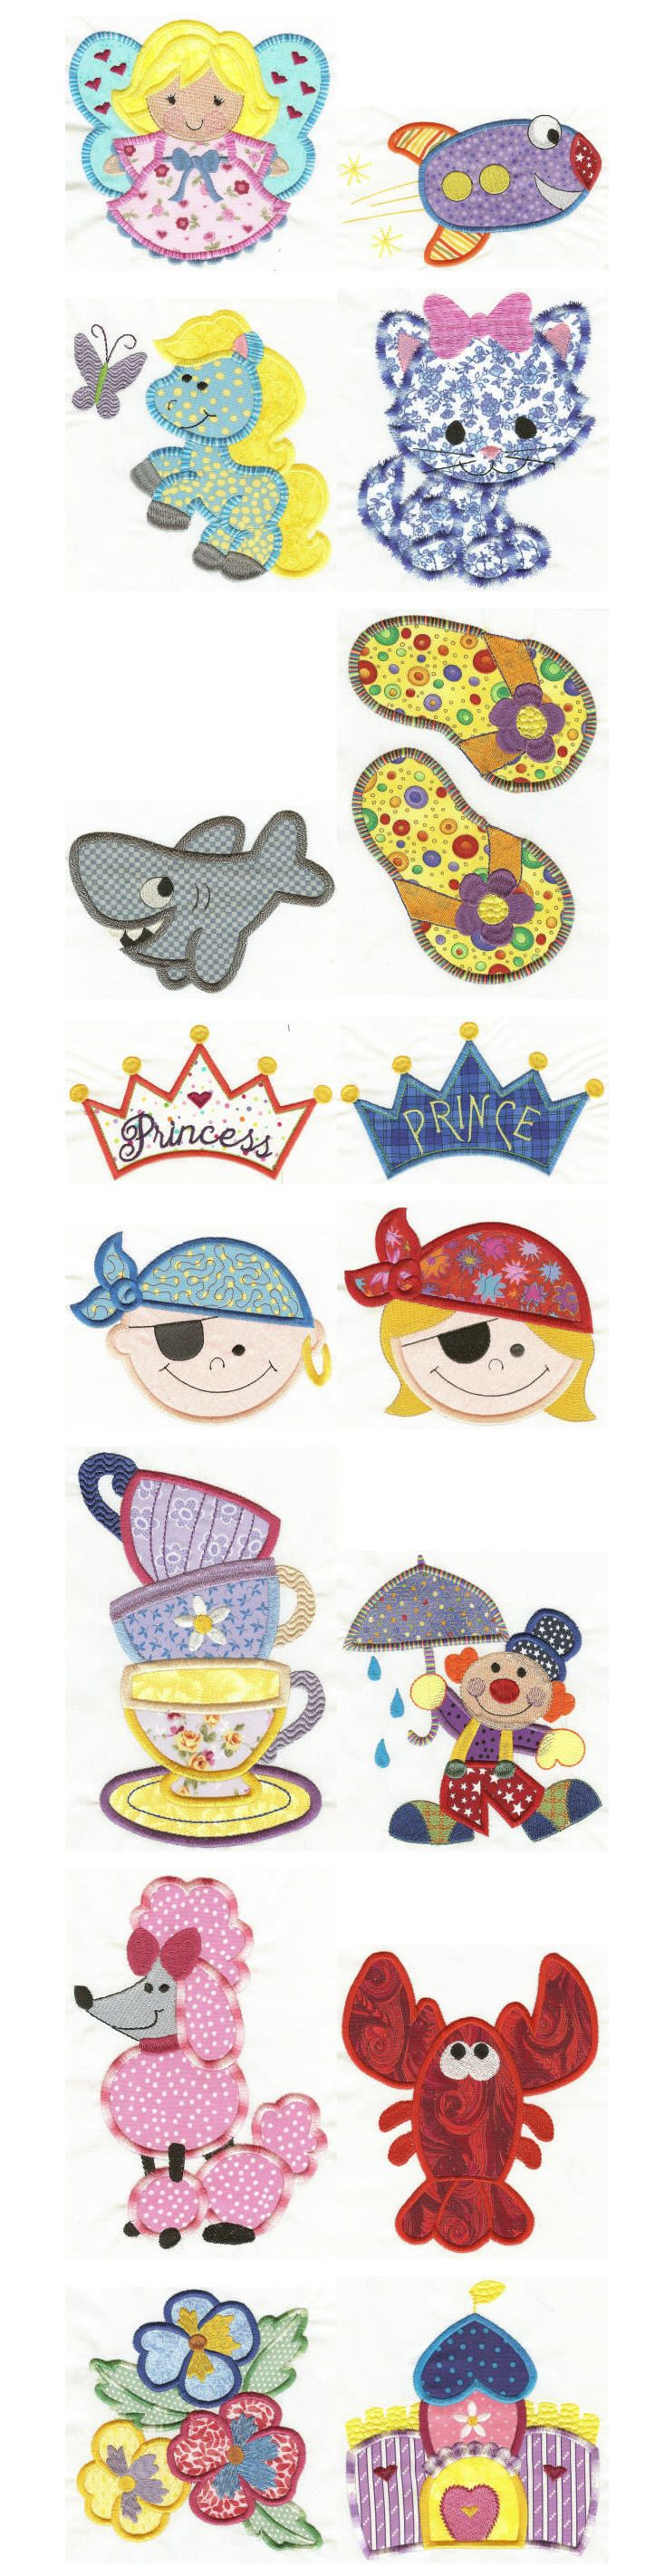 1000 images about applique patterns on pinterest embroidery